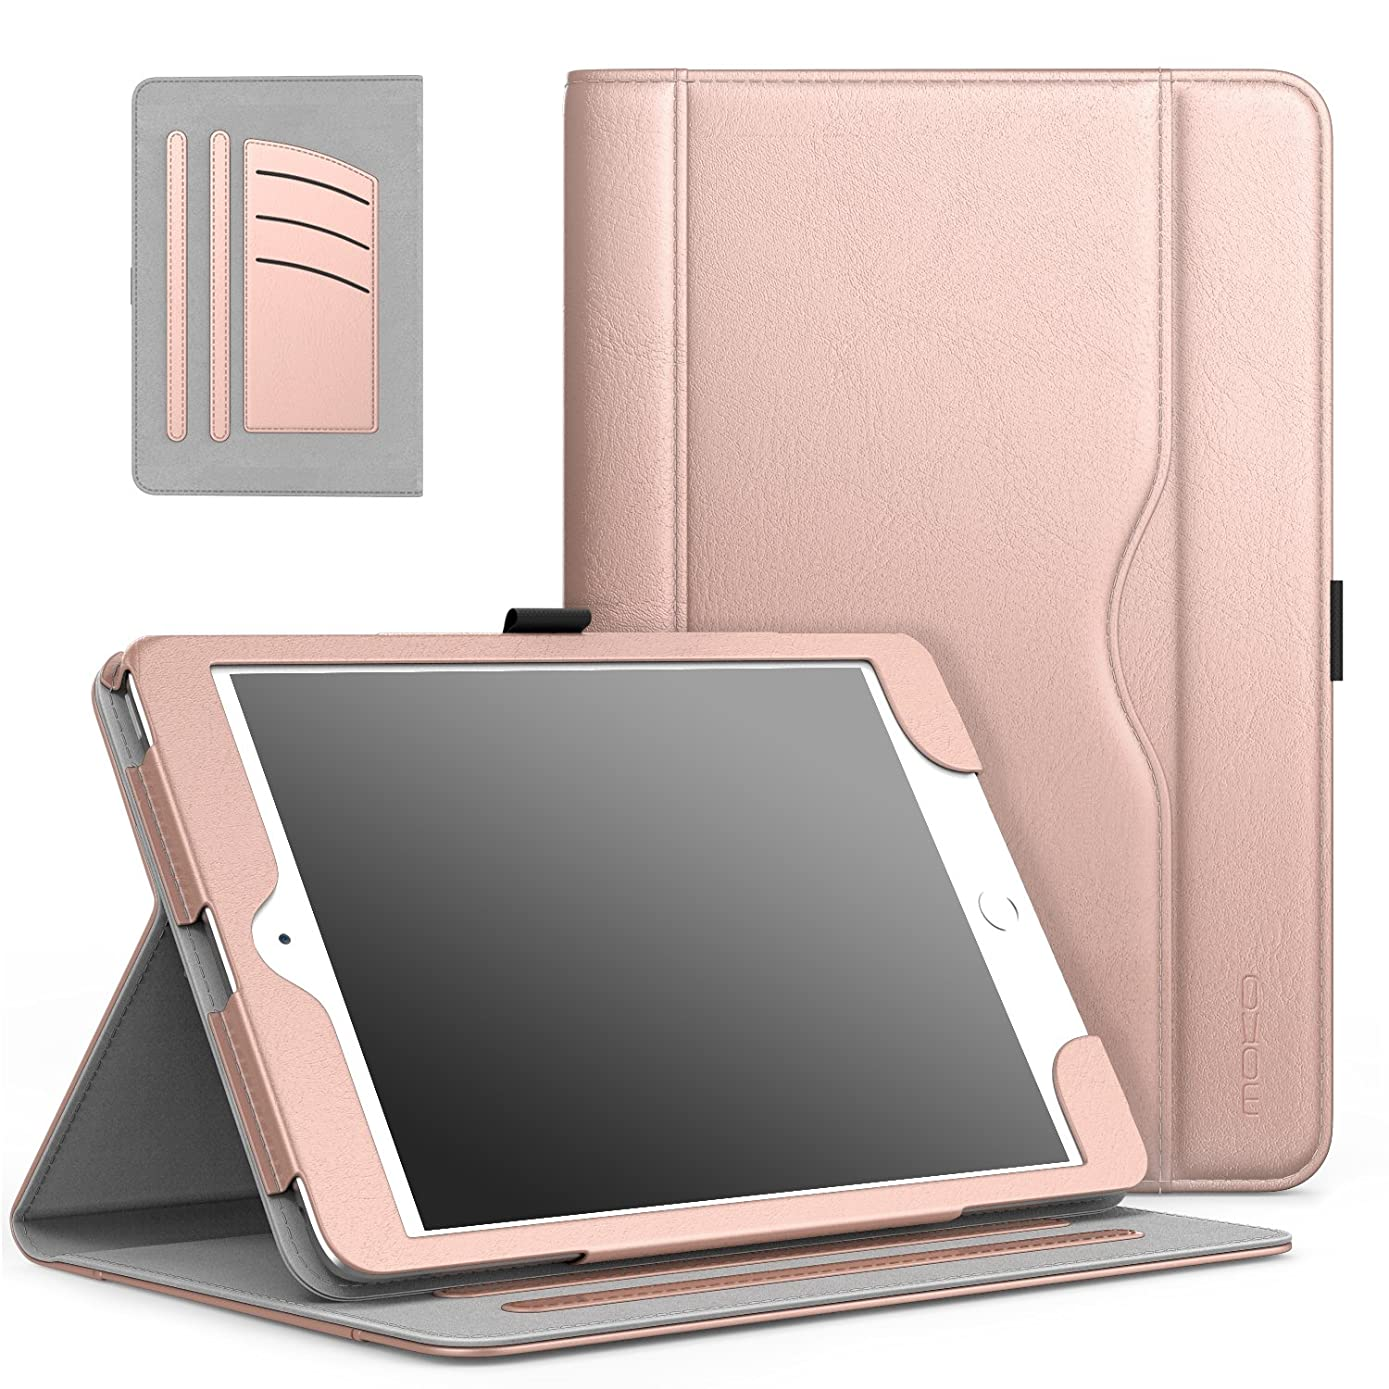 MoKo iPad Mini 3/2 / 1 Case, Slim Folding Stand Folio Cover Case for Apple iPad Mini 1 / Mini 2 / Mini 3, with Auto Wake/Sleep and Document Card Slots, Multiple Viewing Angles, Rose Gold